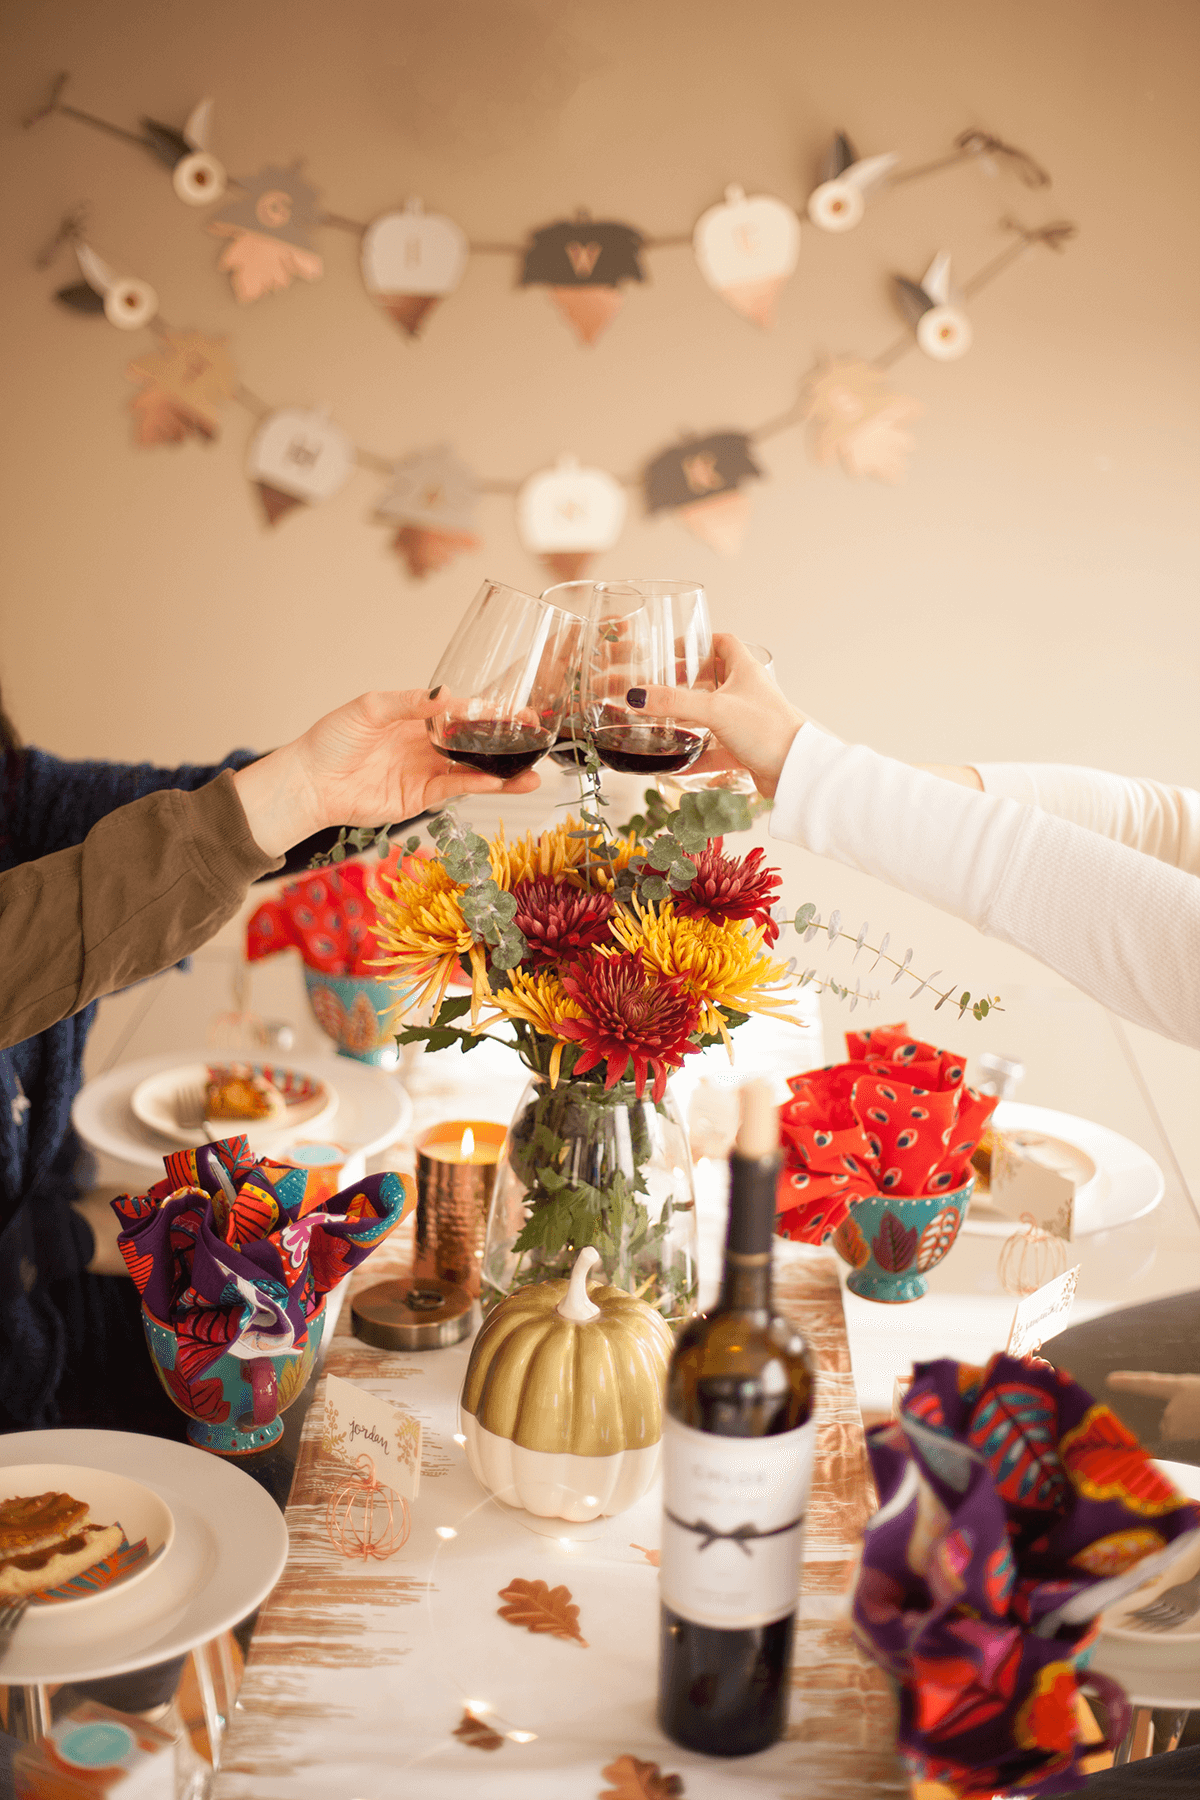 How To Friendsgiving